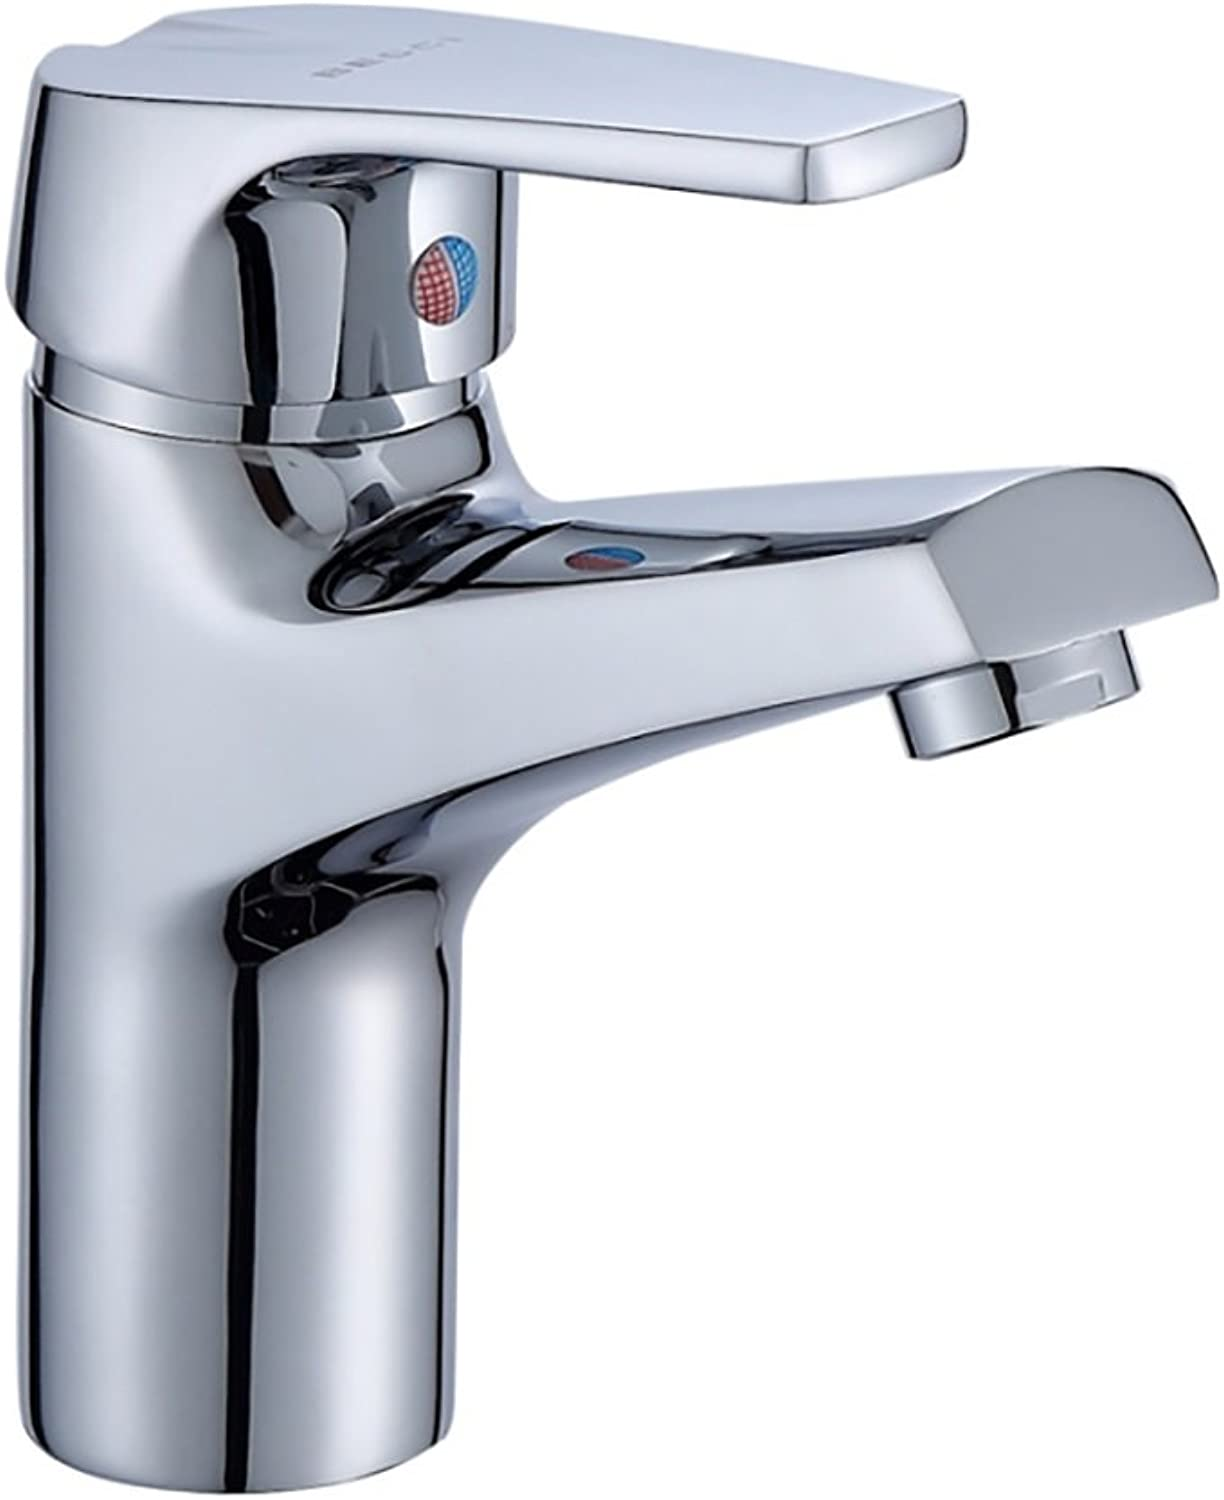 GAOLIQIN Hot & Cold Basin Faucet Stunning Waterfall Bathroom Sink Cold and Hot Water Tap Chrome Finish Bathroom balcony faucet